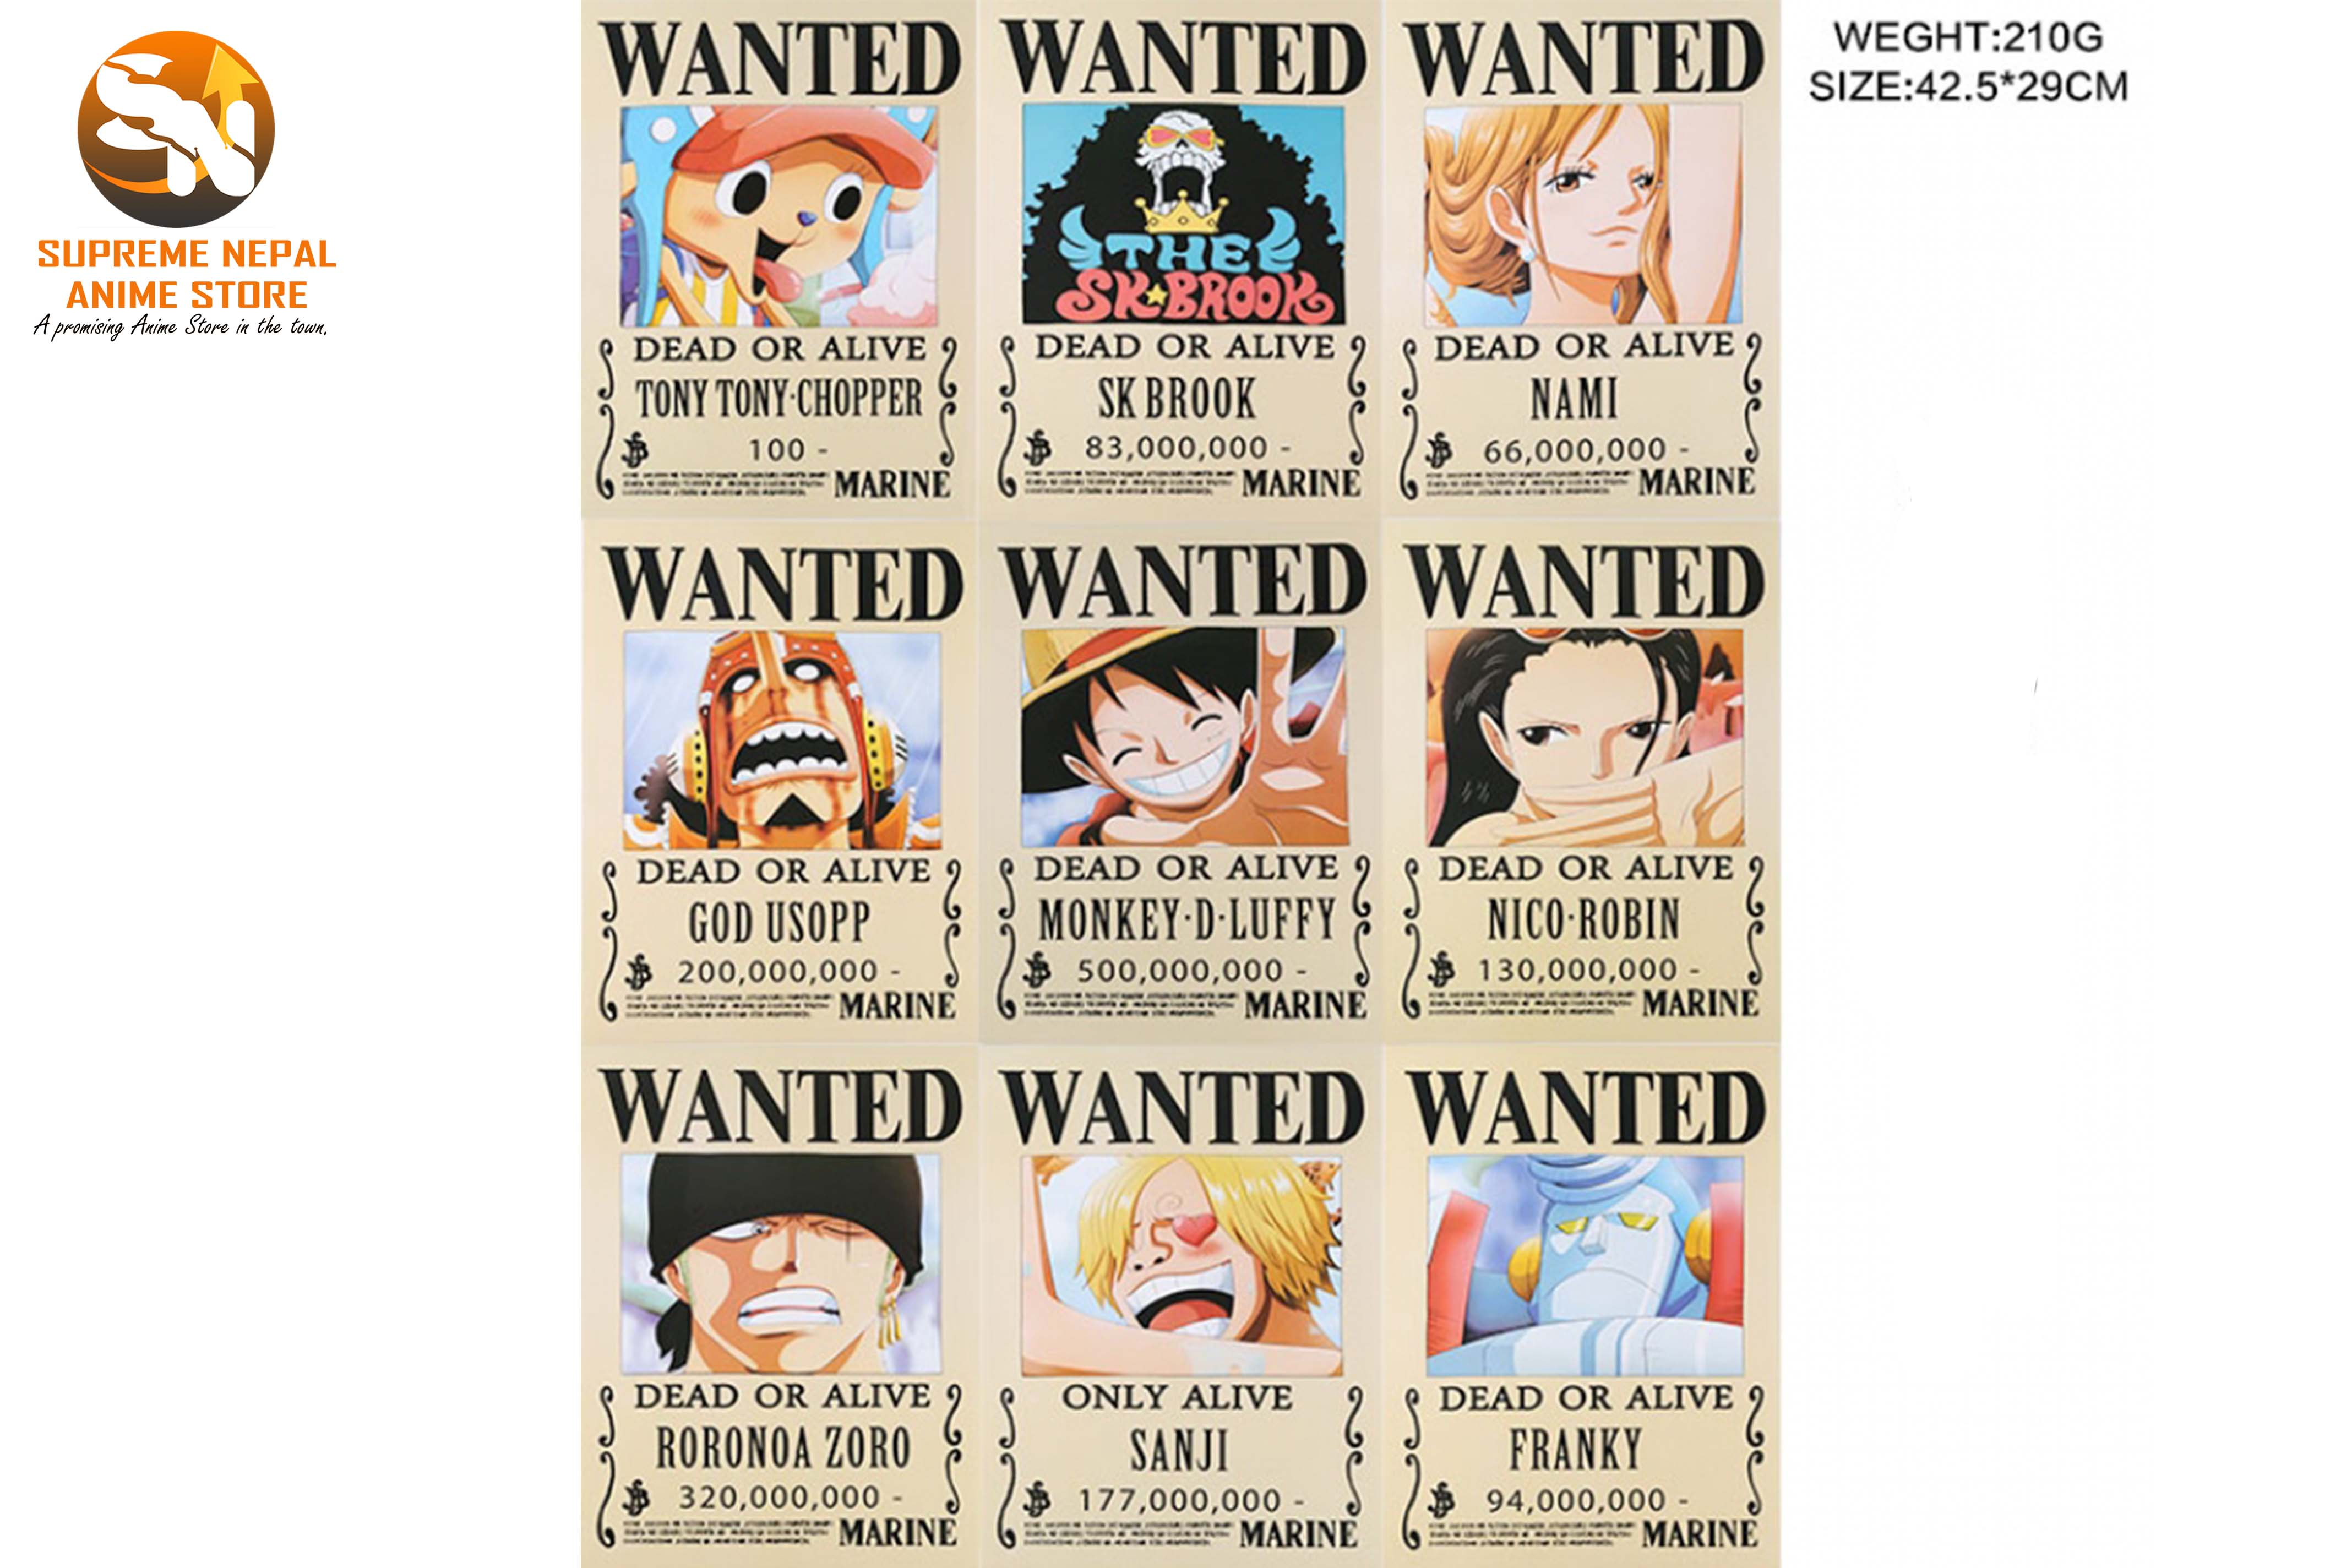 One Piece Wanted Poster 8 Pcs A Set Anime Store